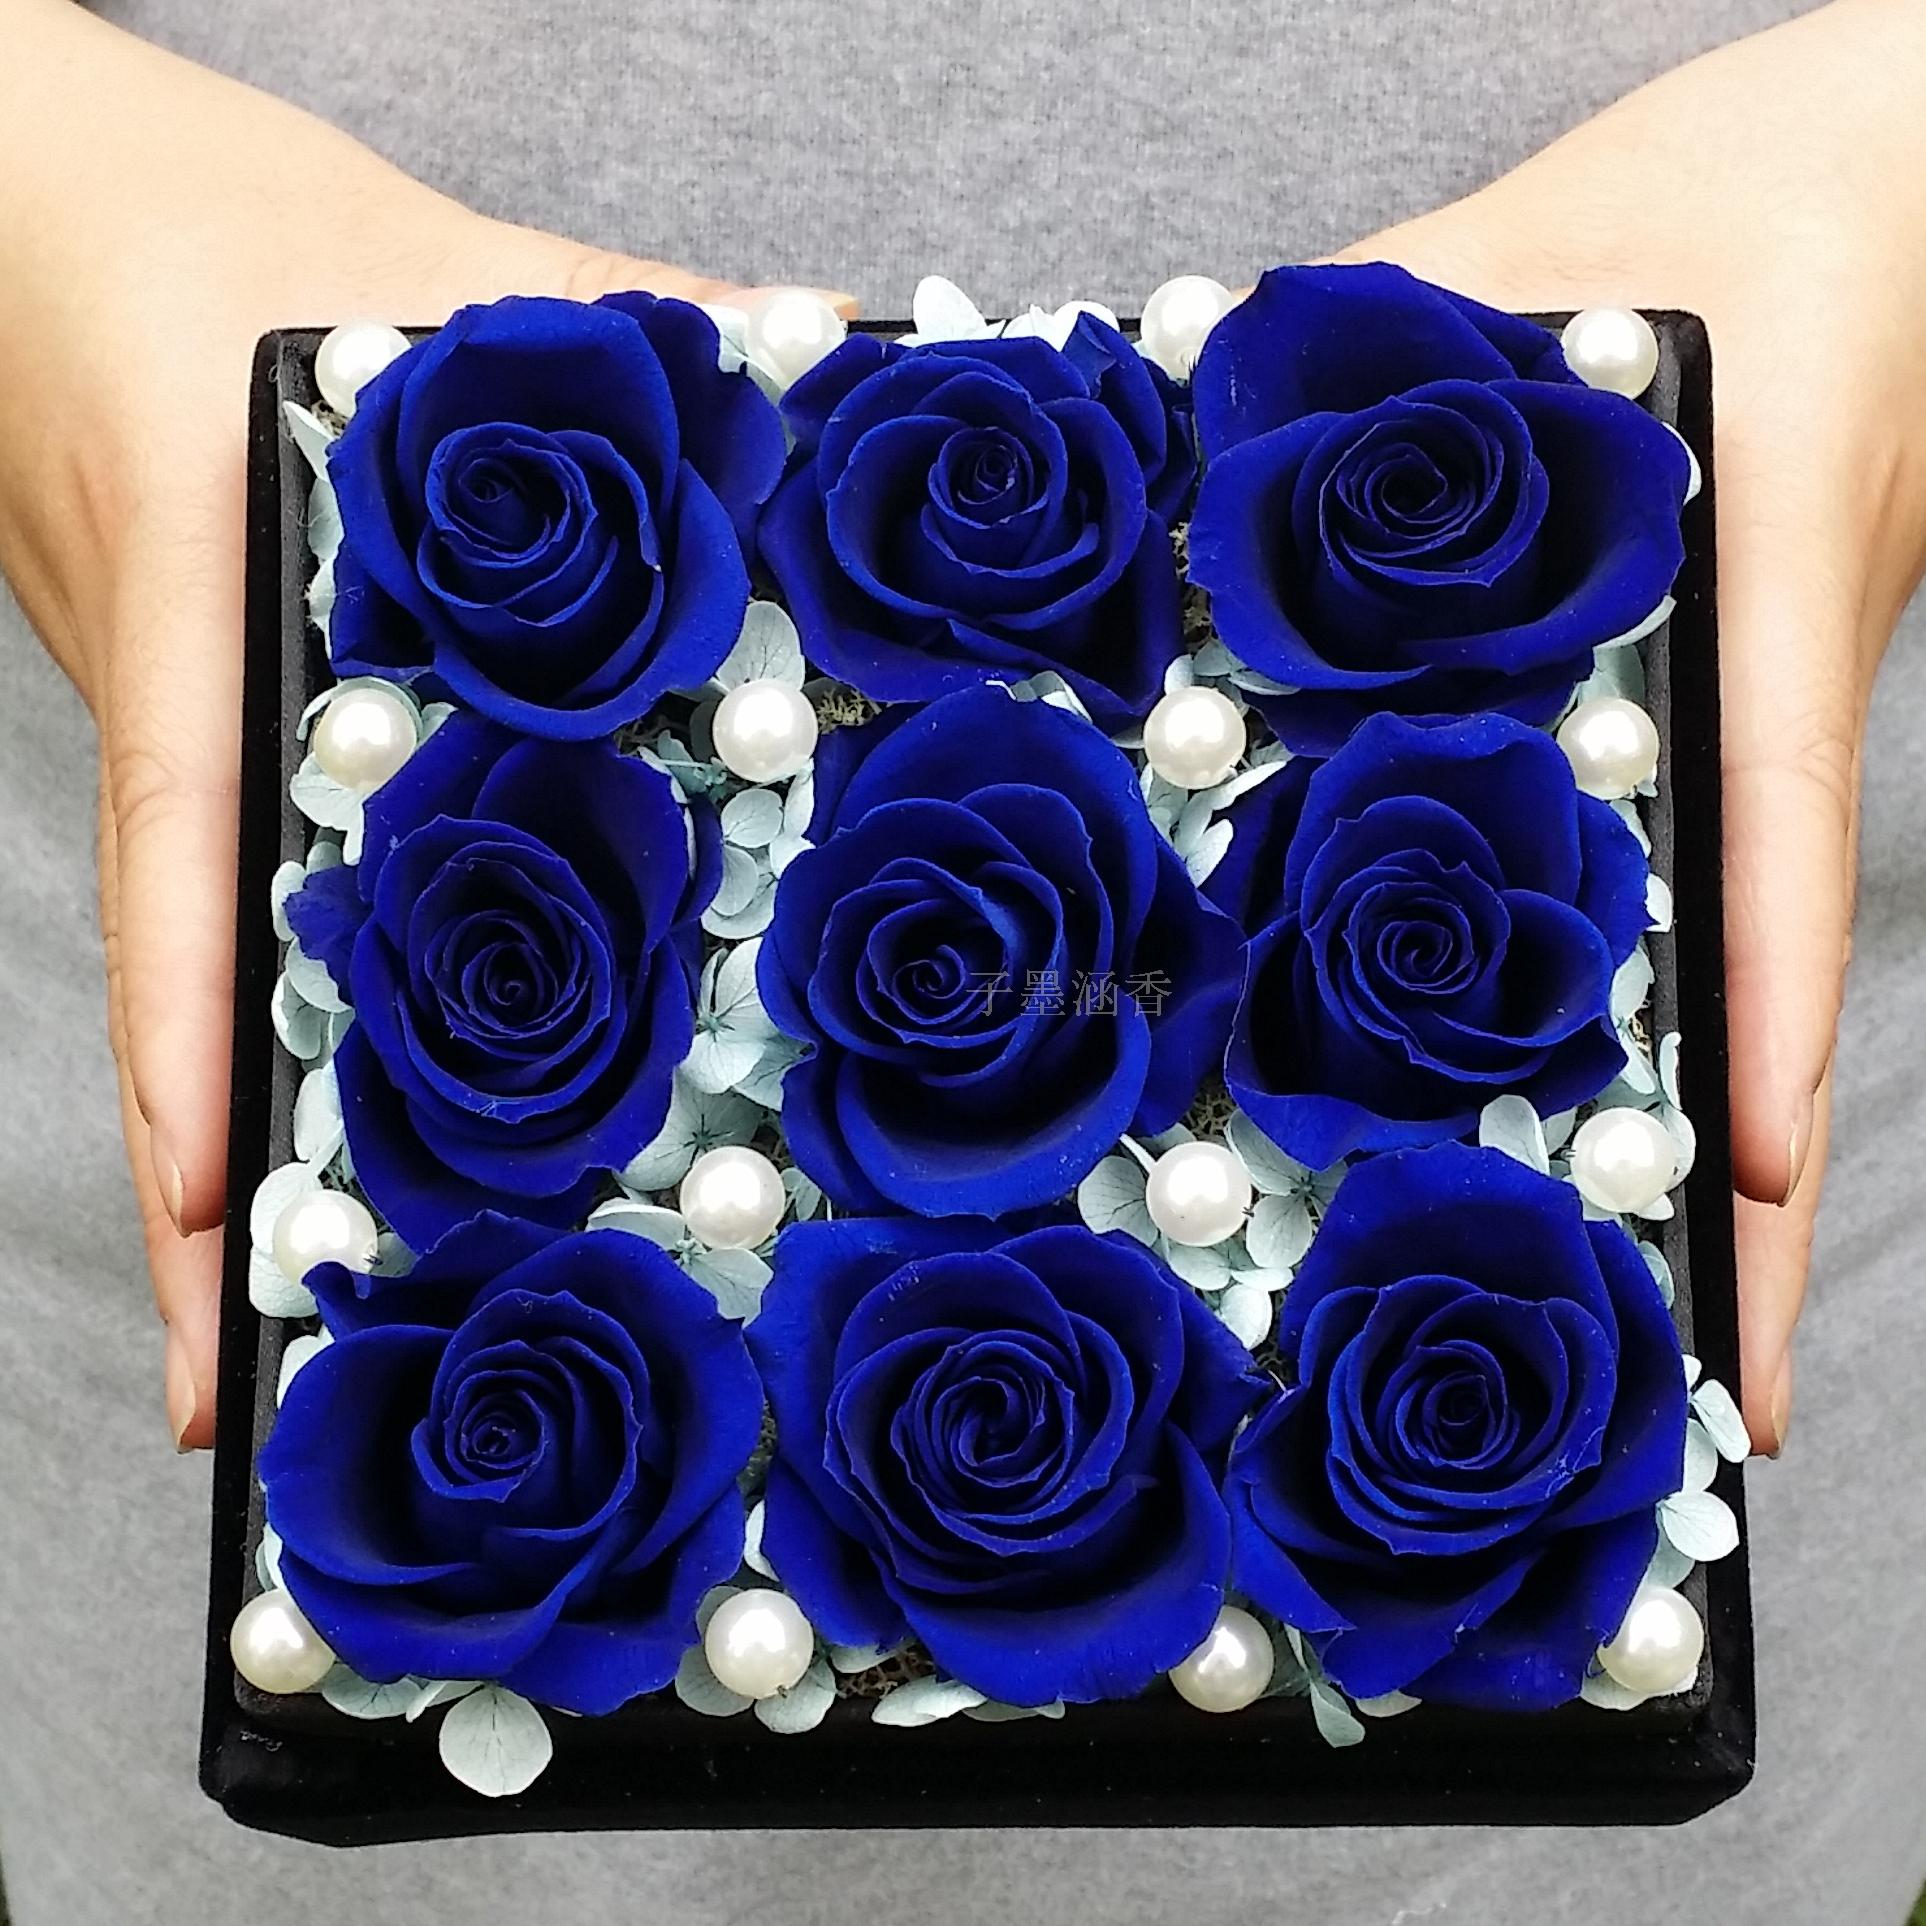 9 bluelover flower preservation imports rose preserved flower flower boxes preserved flower gift birthday bless courtship gift free shipping